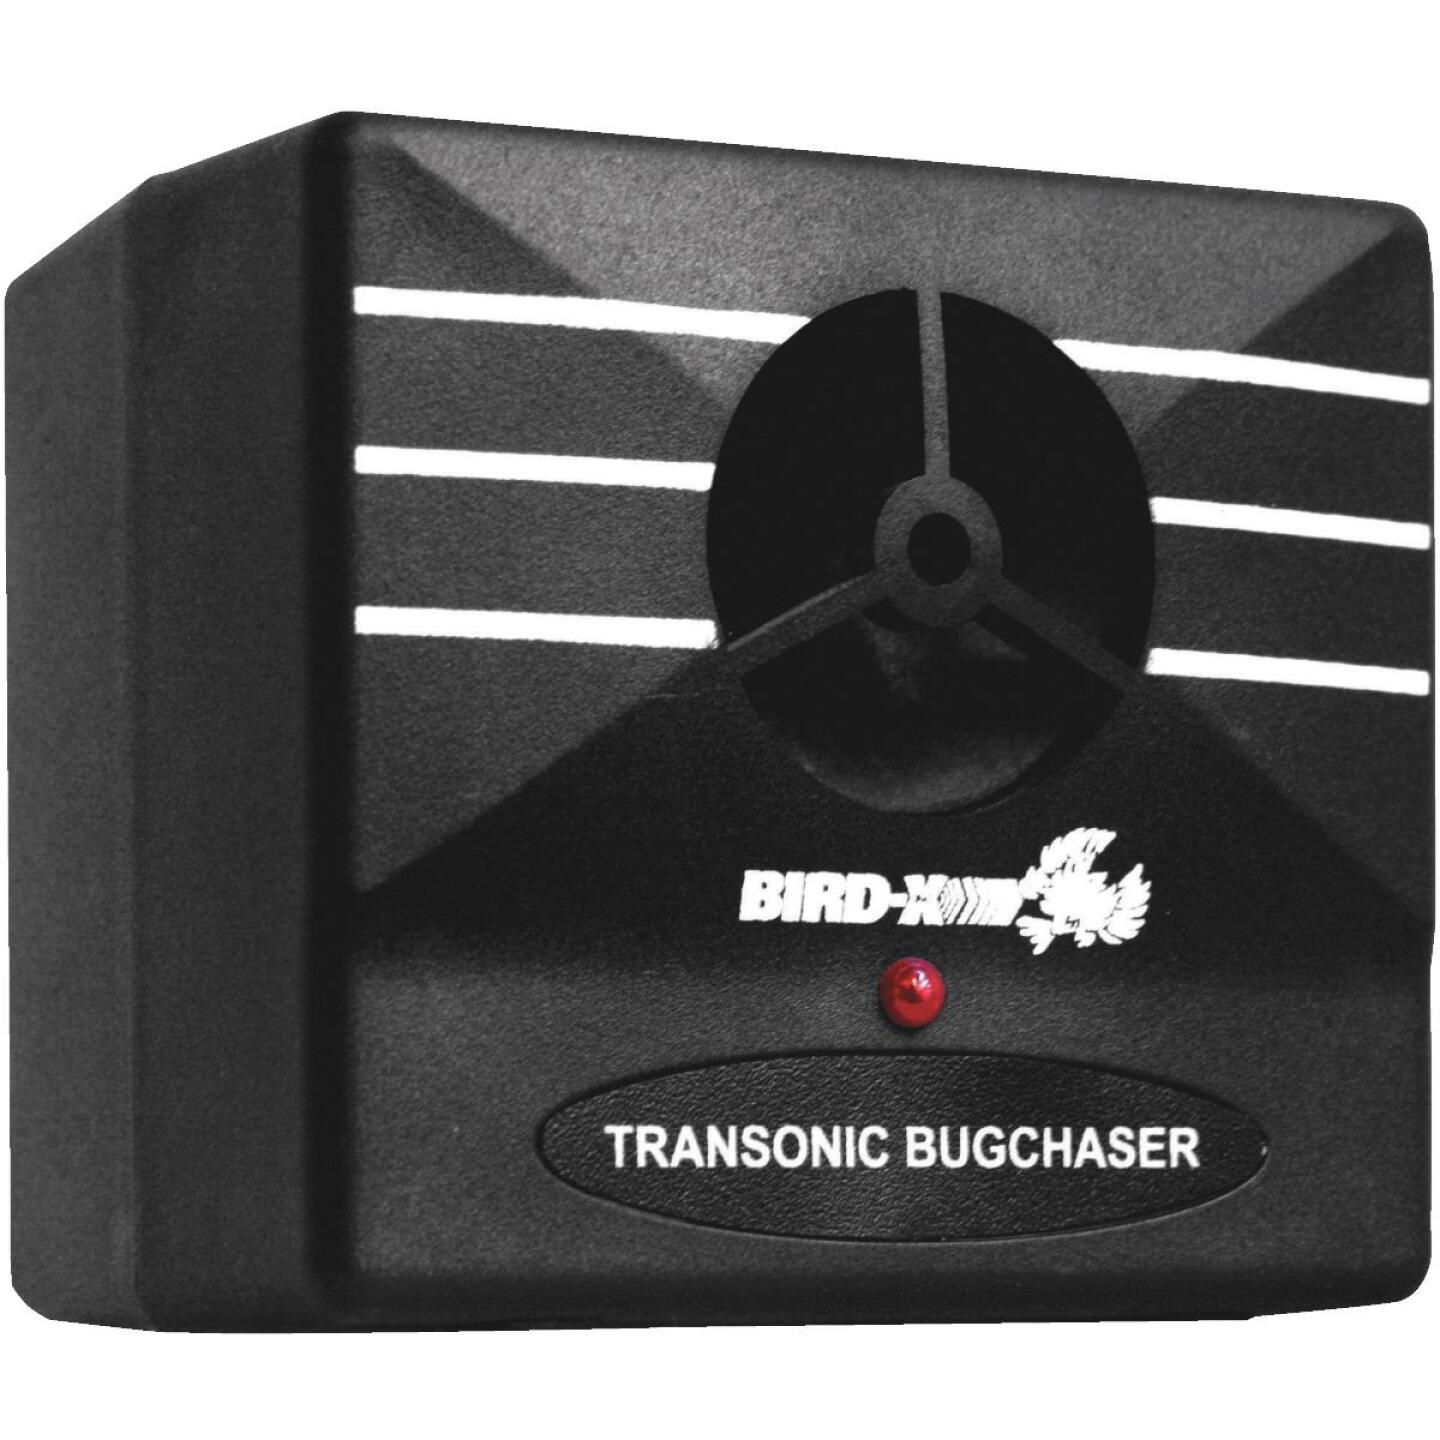 Bird X Transonic BugChaser Ultrasonic 1500 Sq. Ft. Coverage 110V Electronic Pest Repellent Image 2